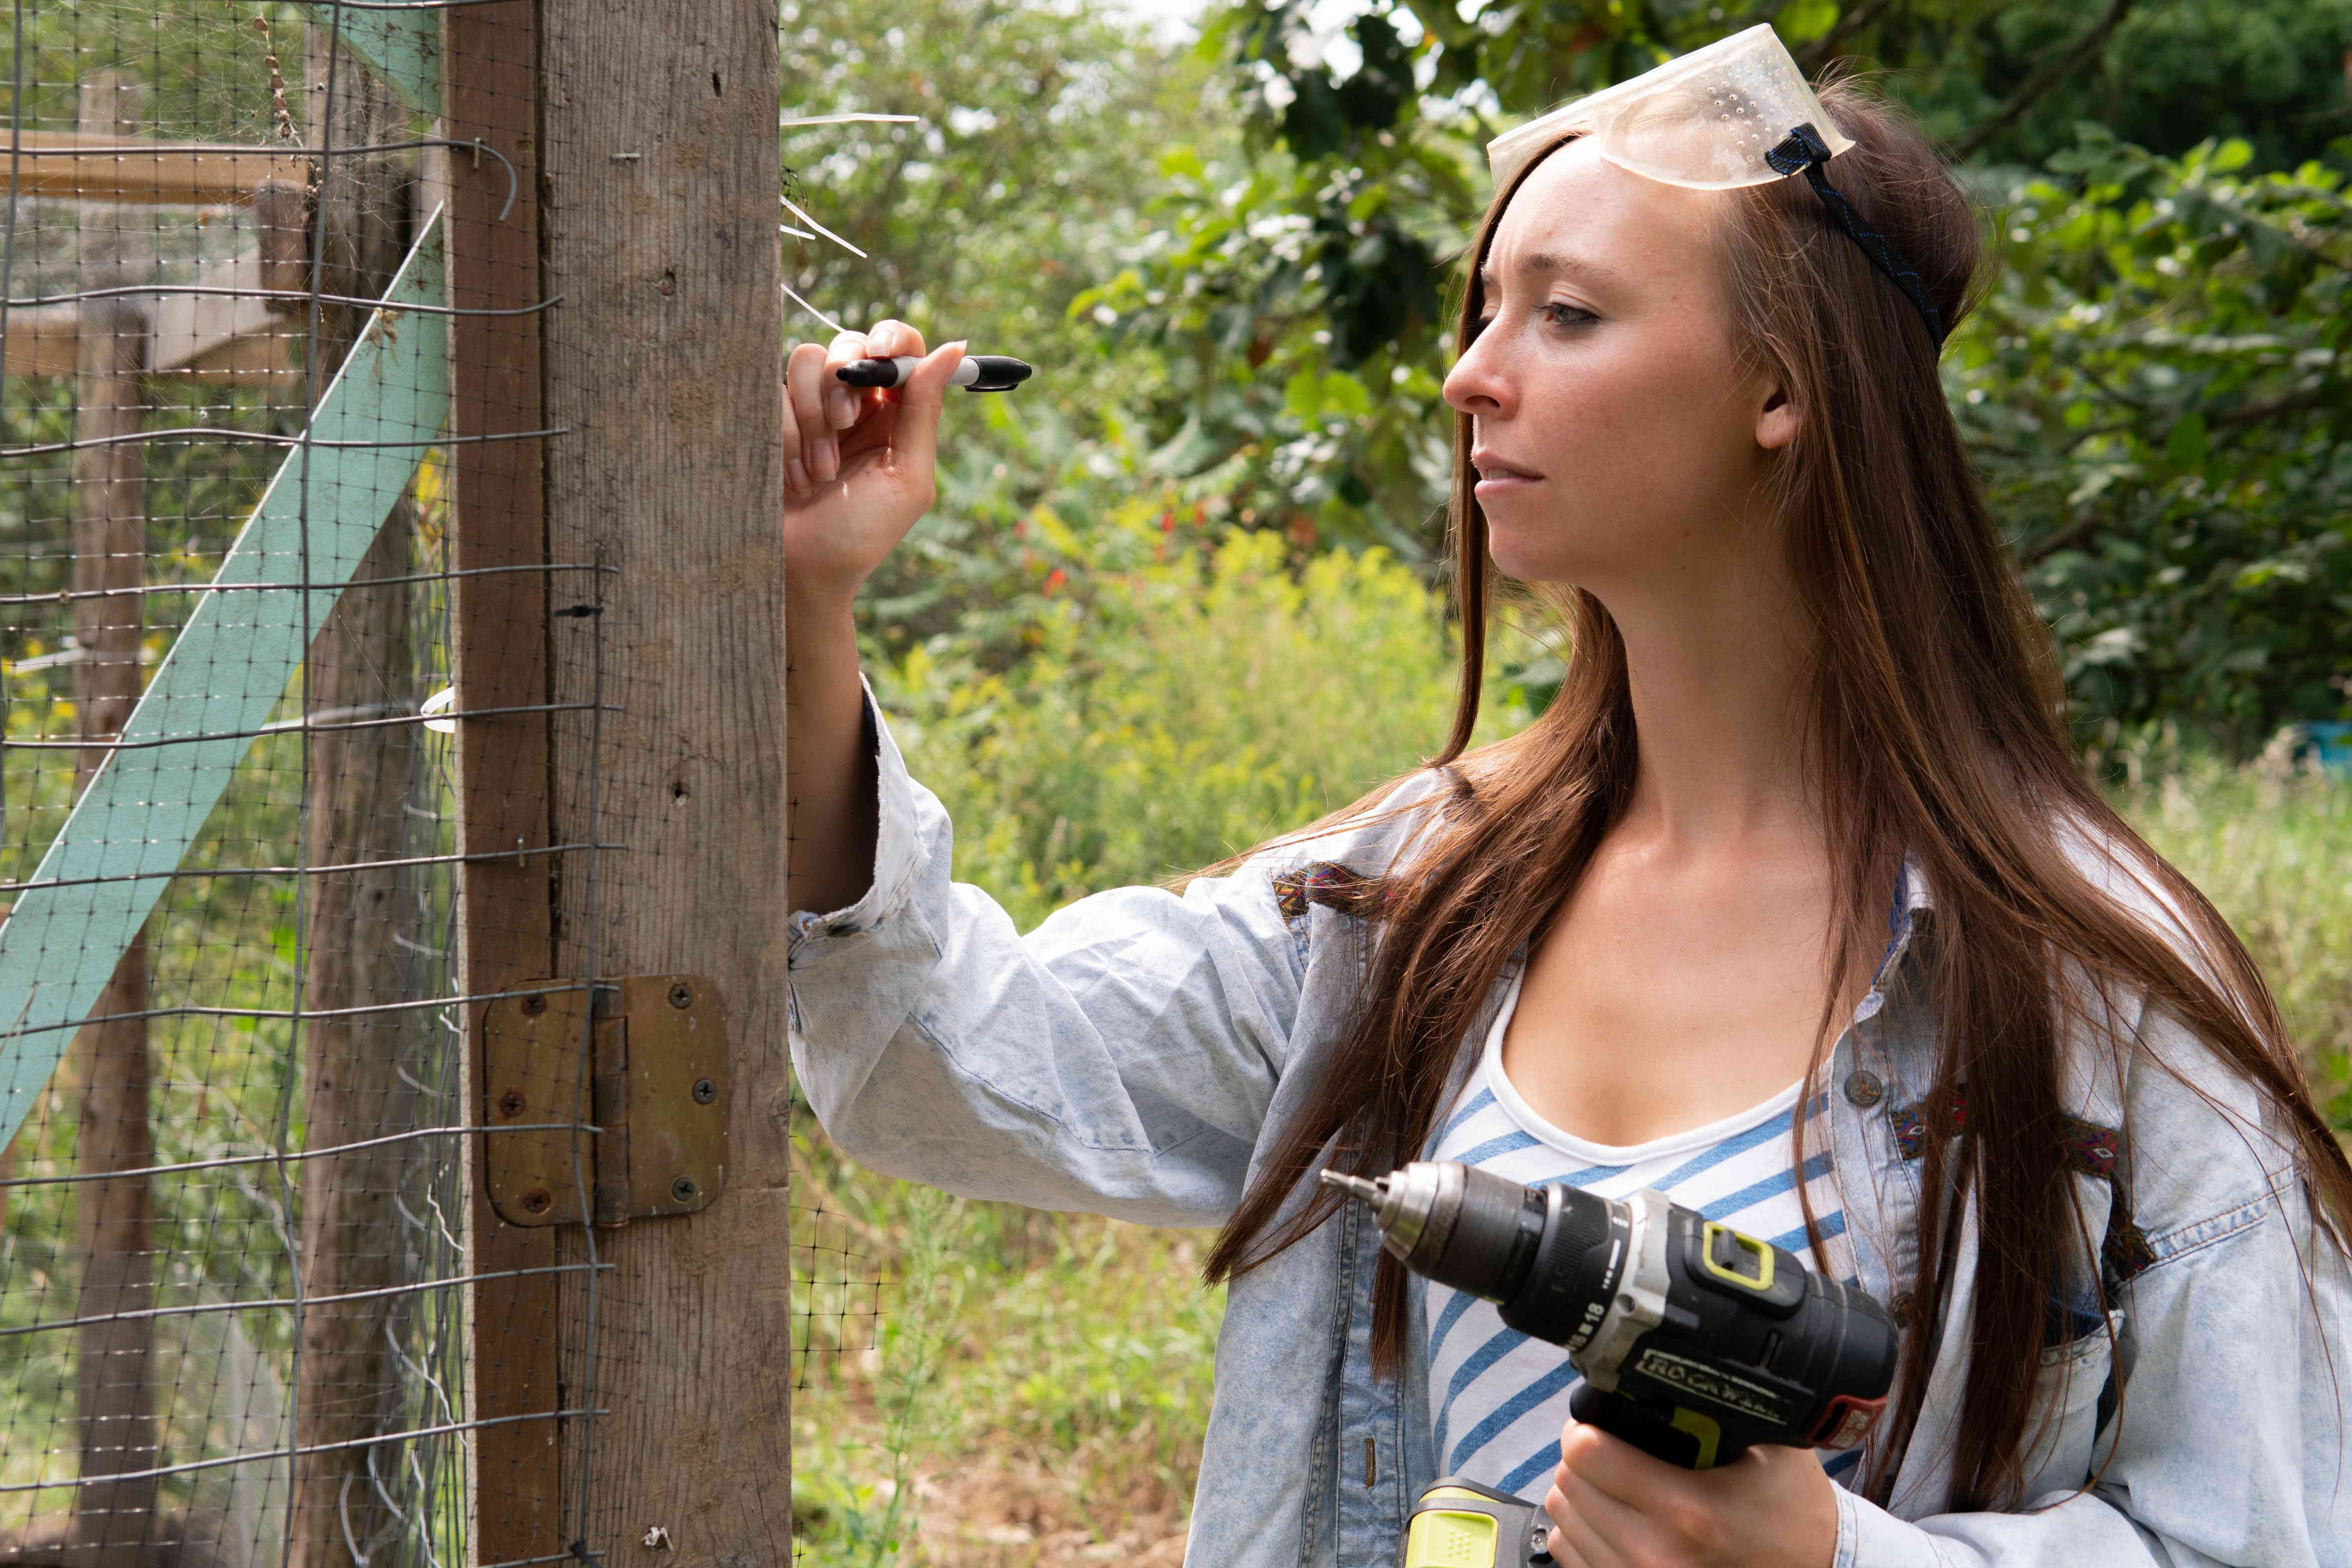 young farmer with drill works on building a chicken coop outside